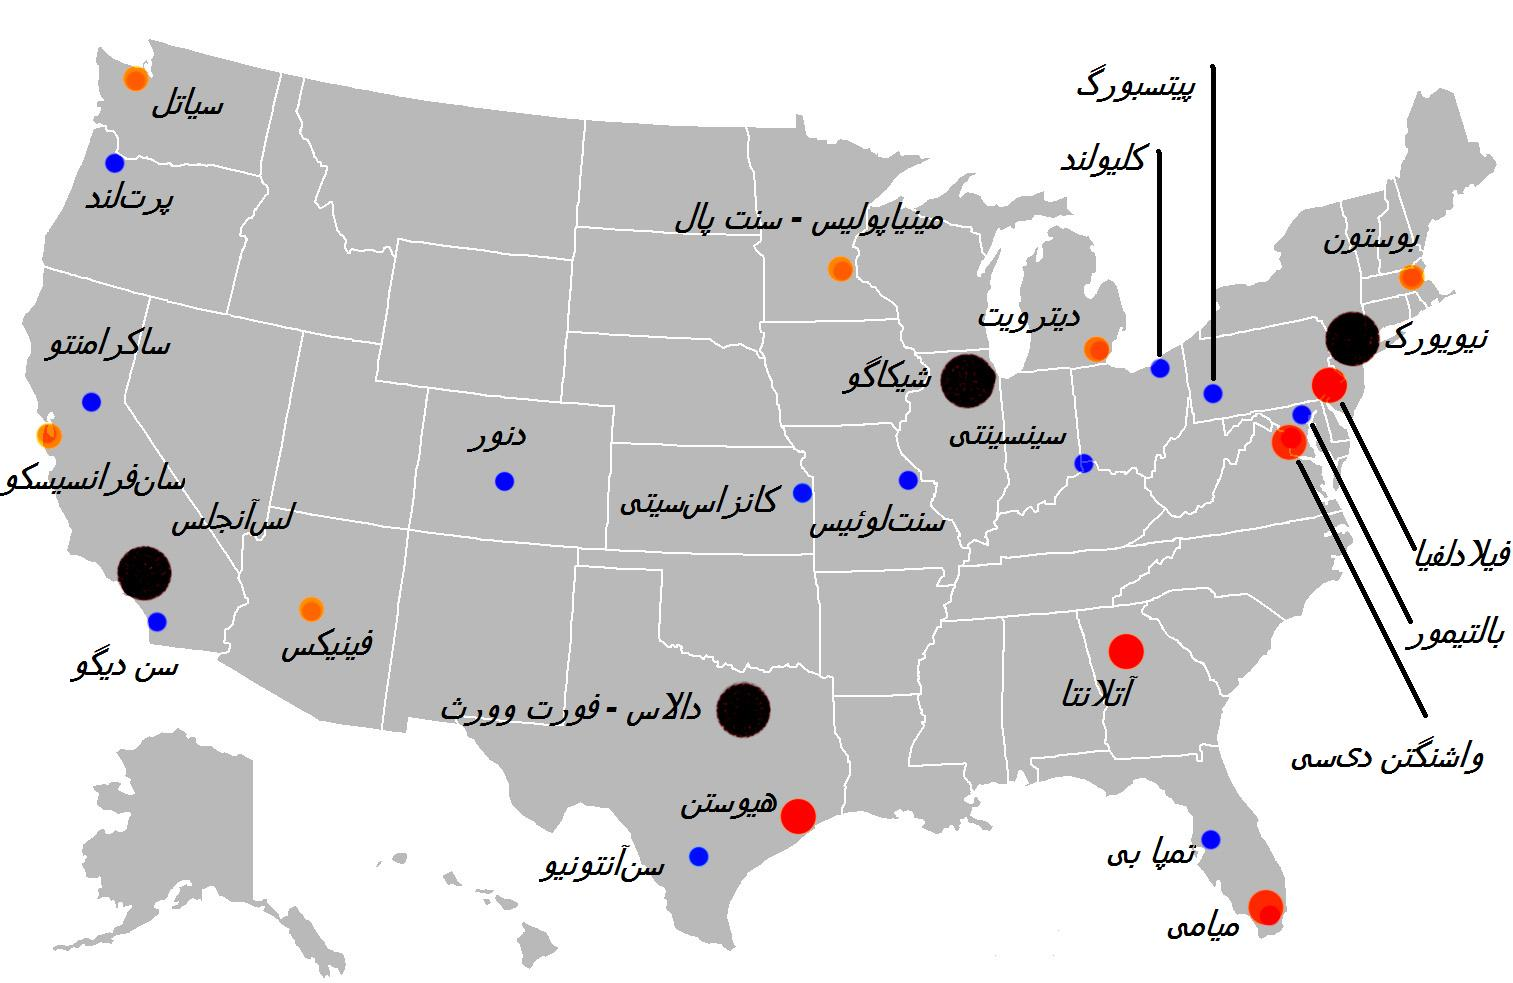 Cities Us Map.File Largest Us Cities Map Persian Jpg Wikimedia Commons